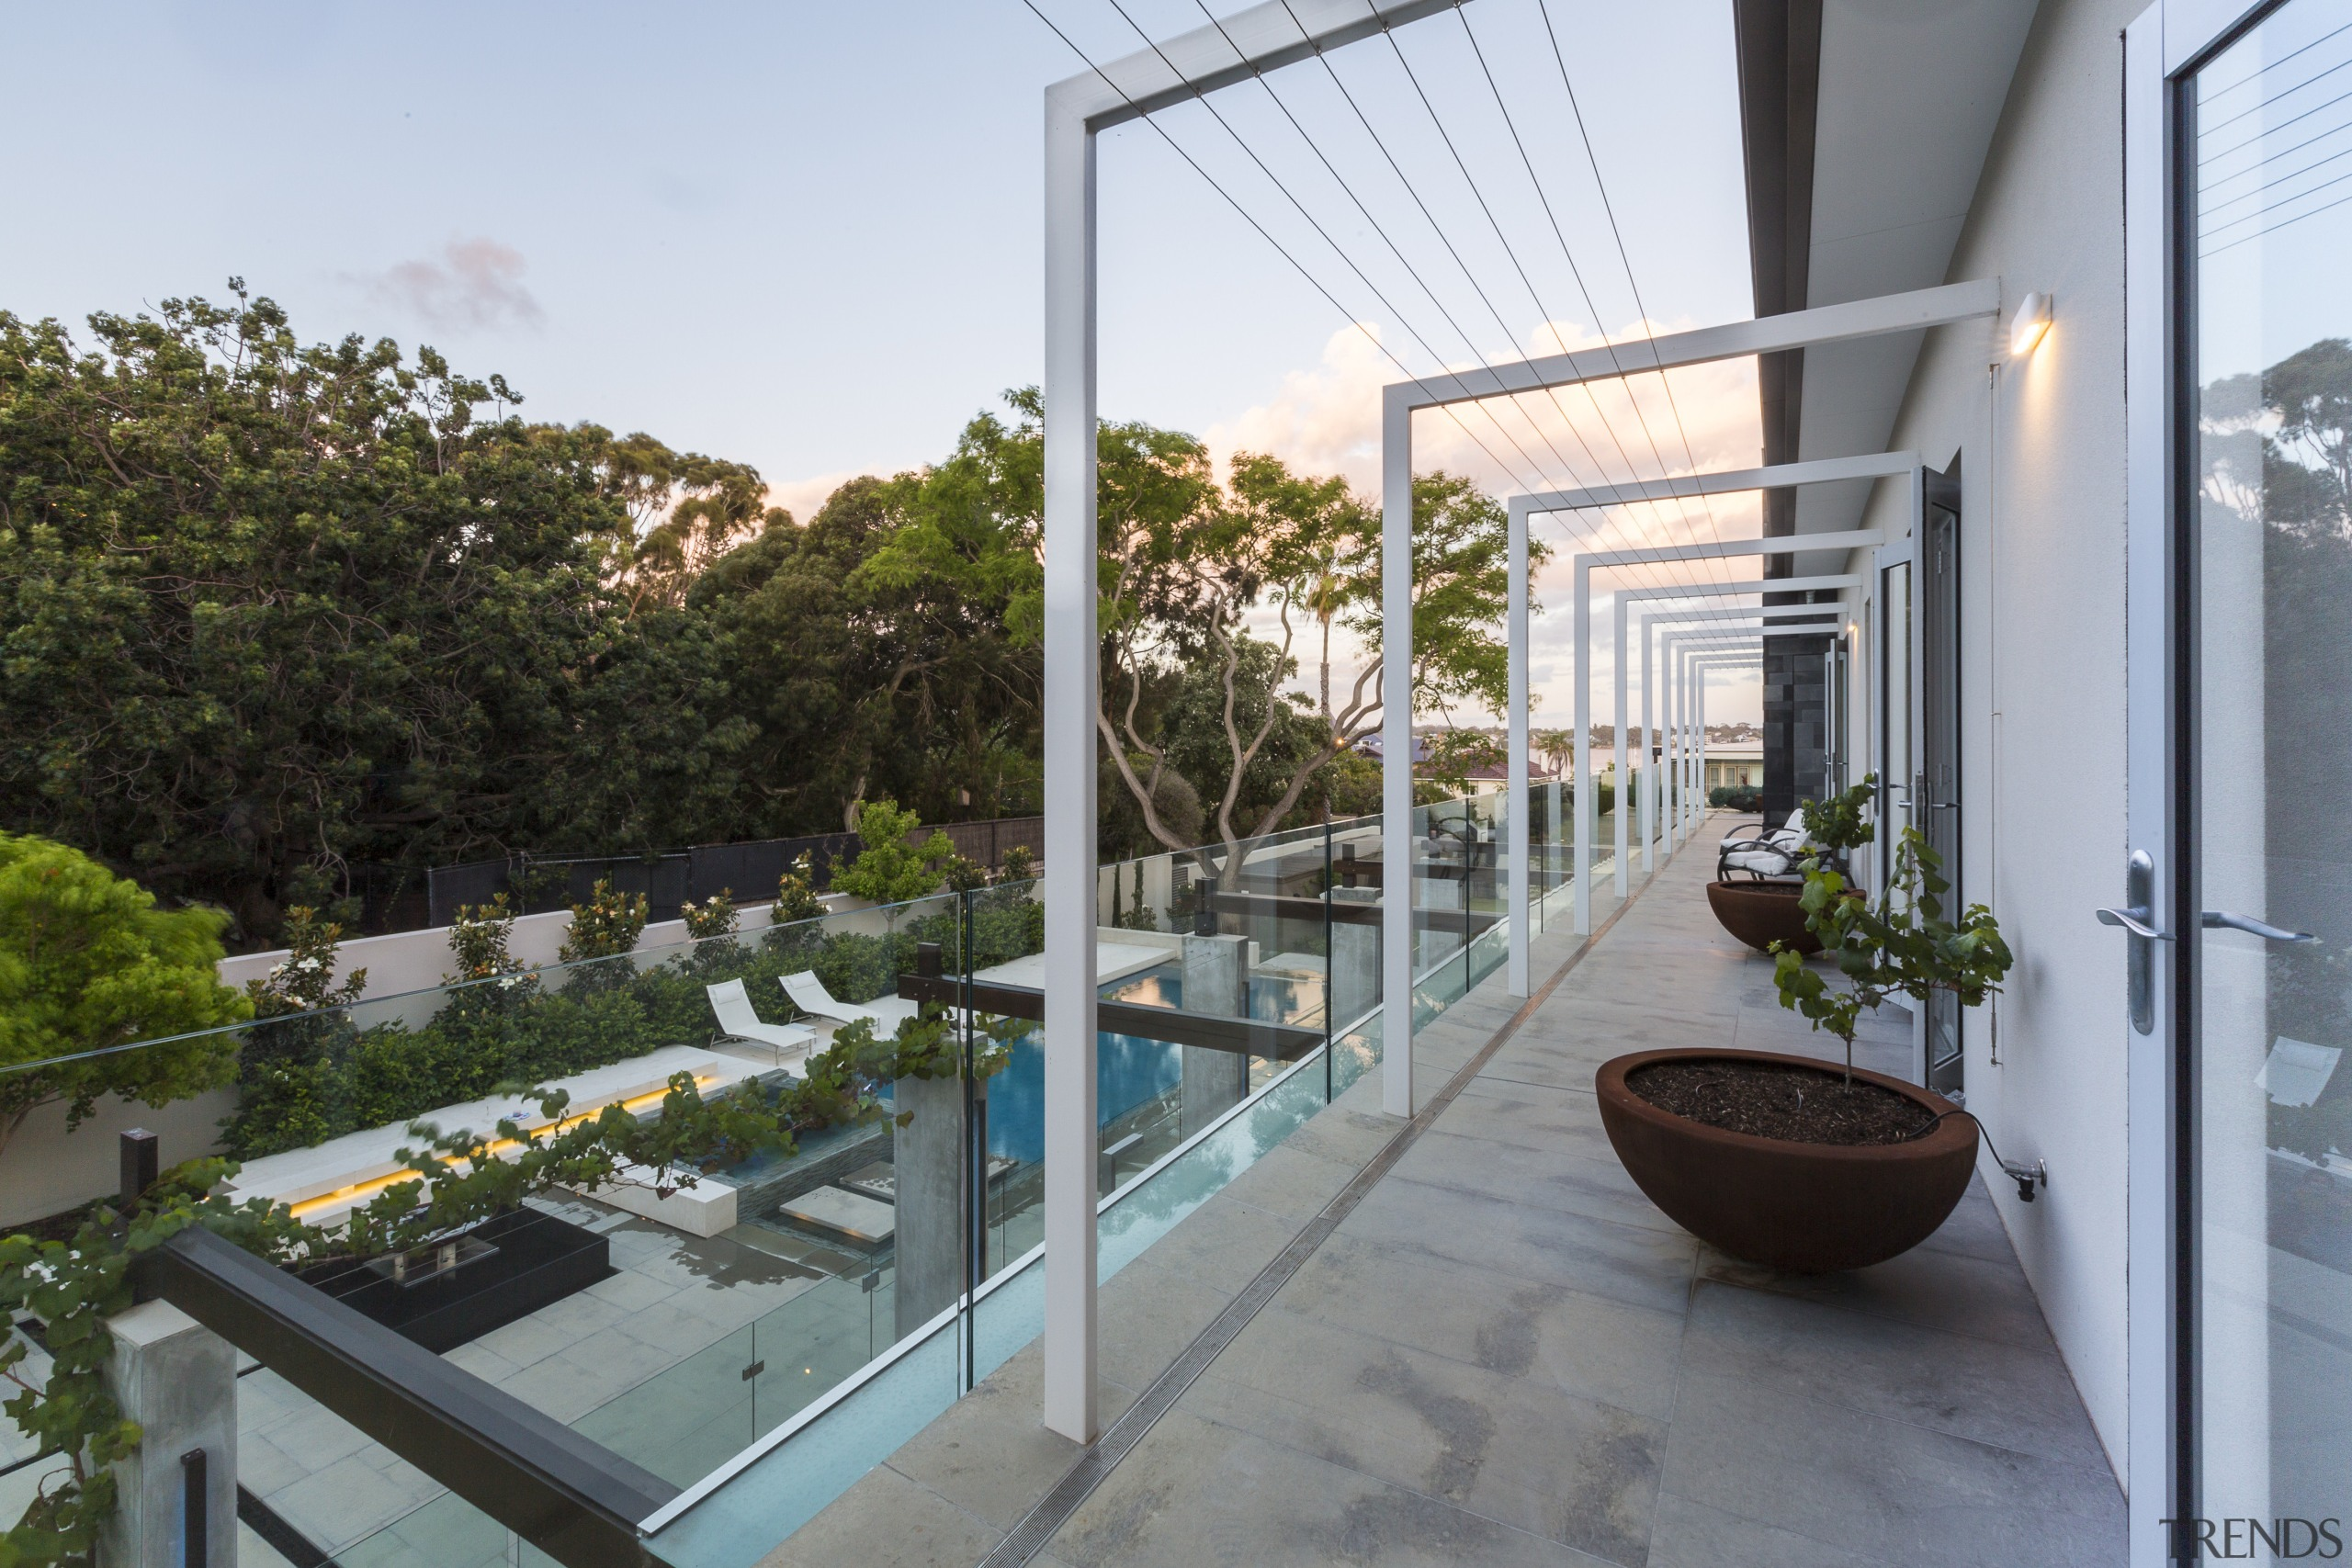 French doors in the bedrooms in this renovated apartment, balcony, condominium, courtyard, outdoor structure, plant, property, real estate, roof, white, gray